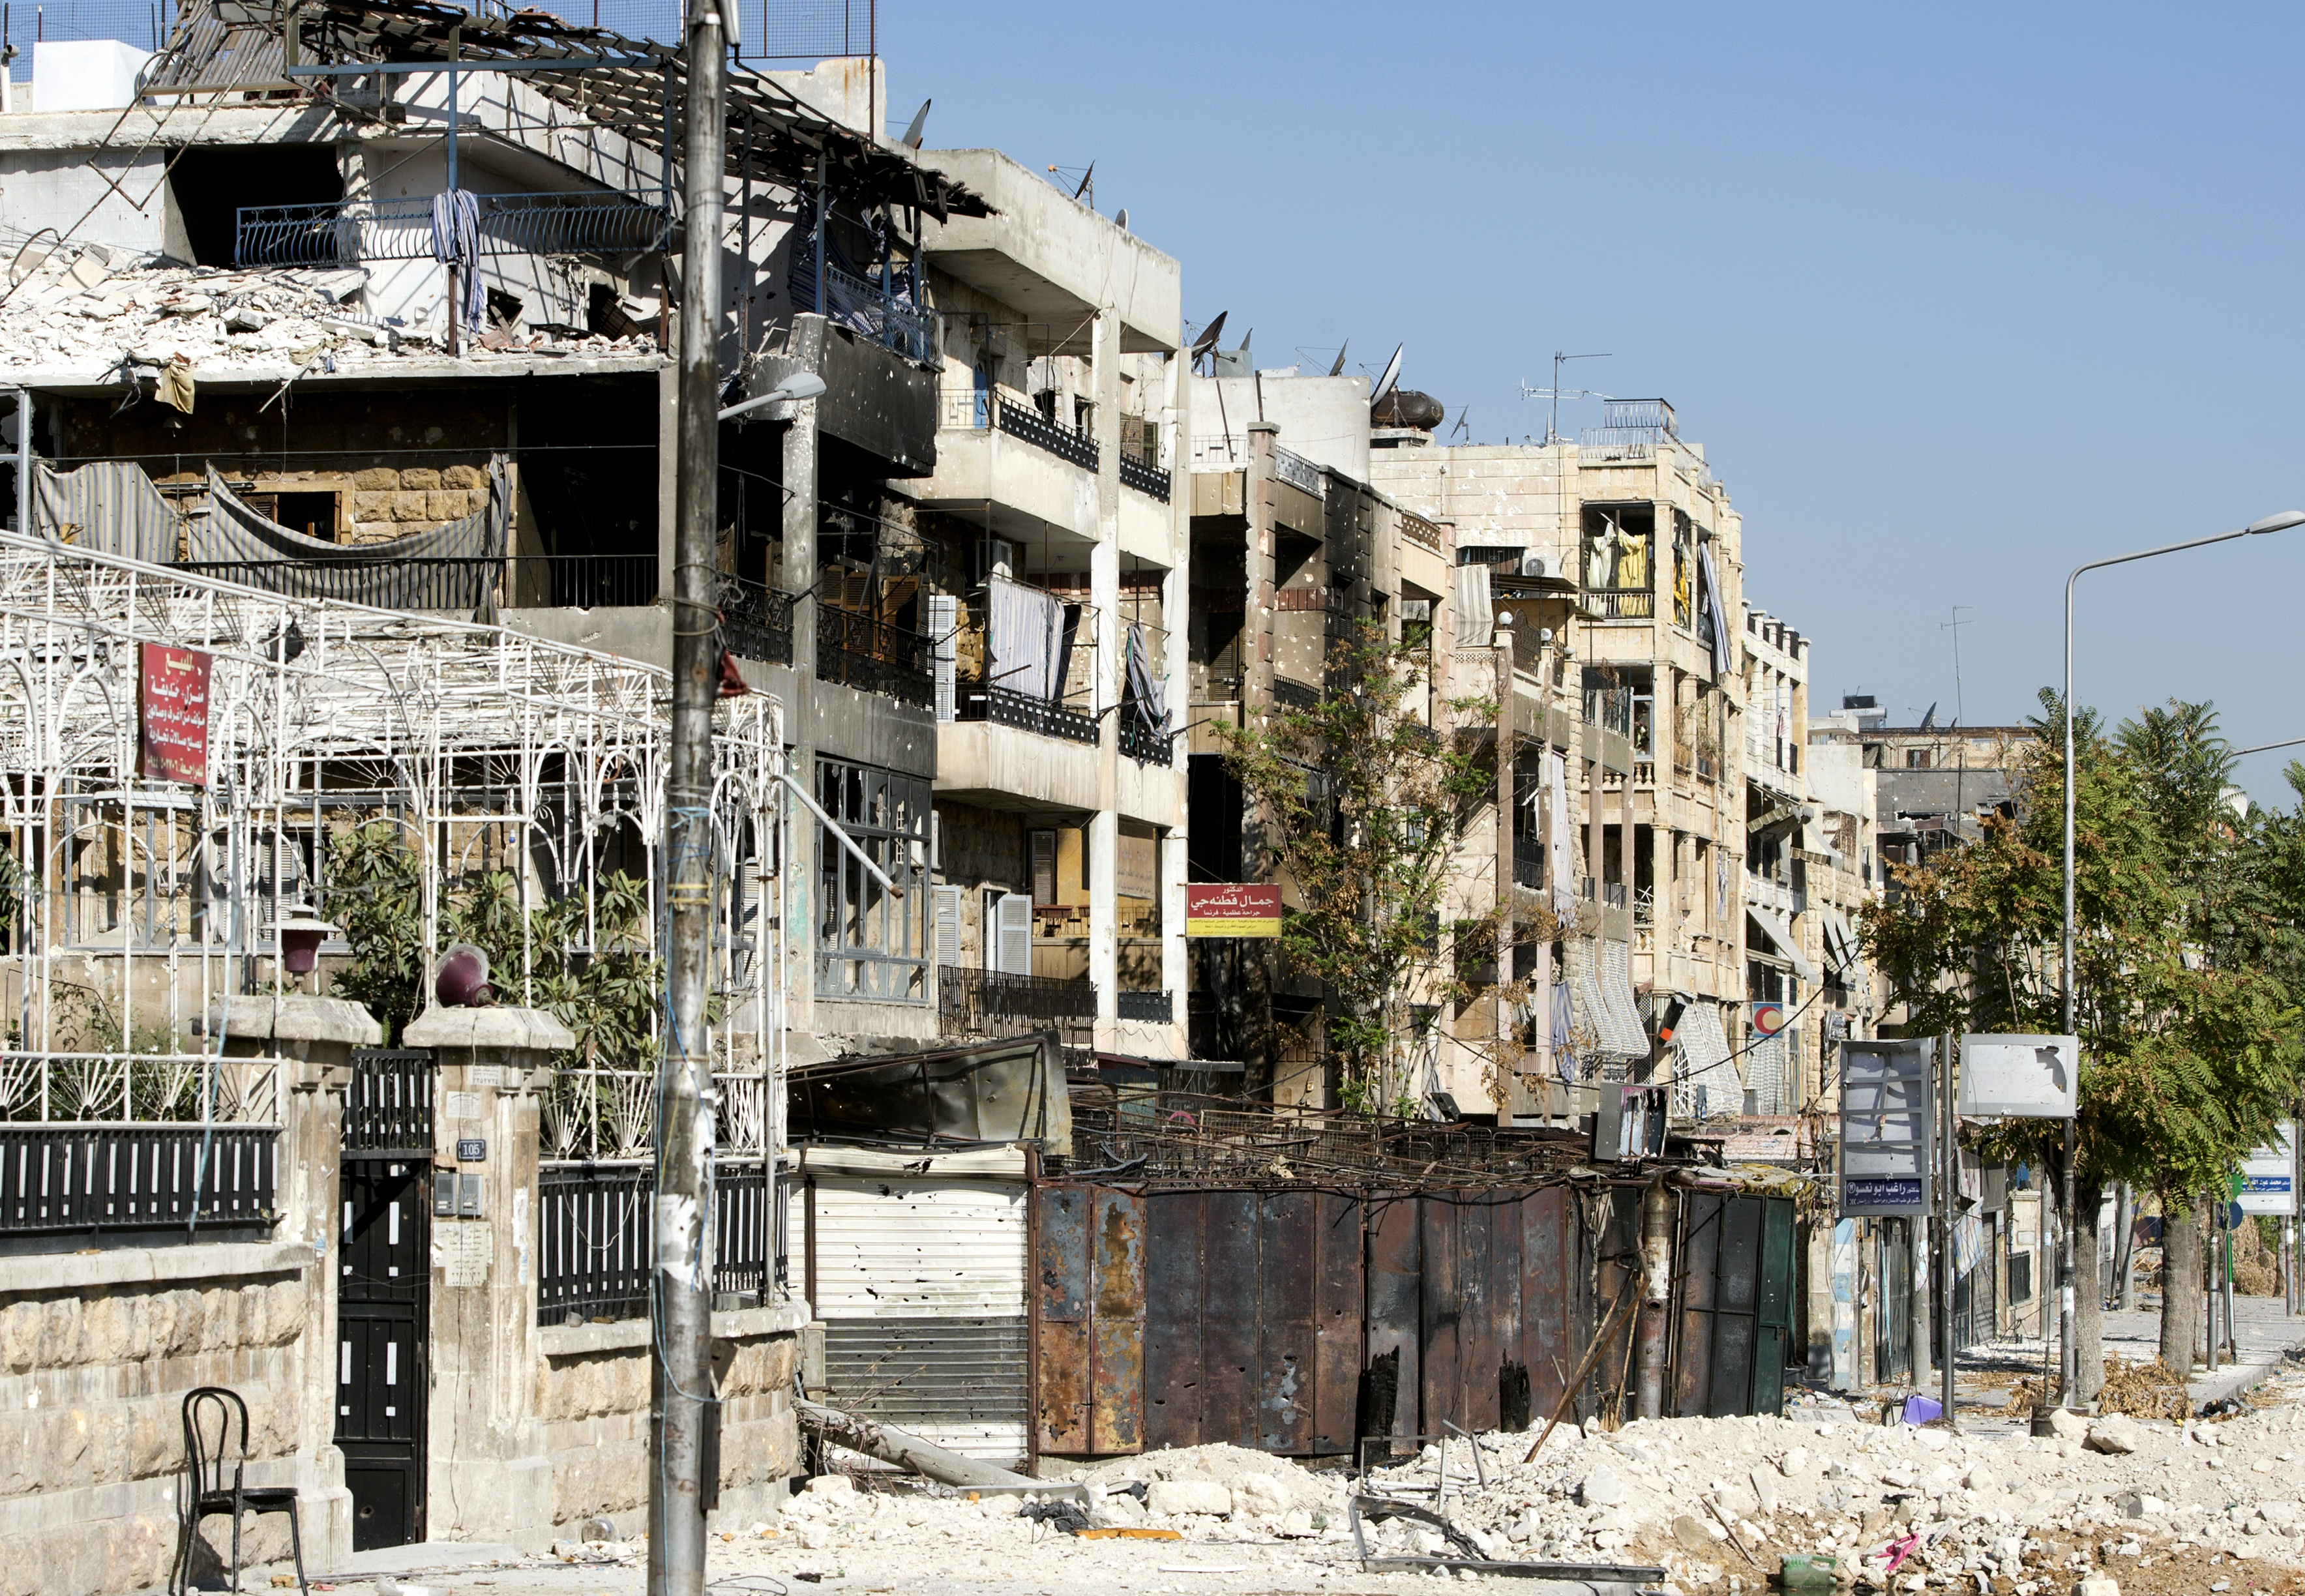 Damaged buildings in the northern city of Aleppo following months of clashes and battles between Syrian rebels and government forces, September 28, 2012.